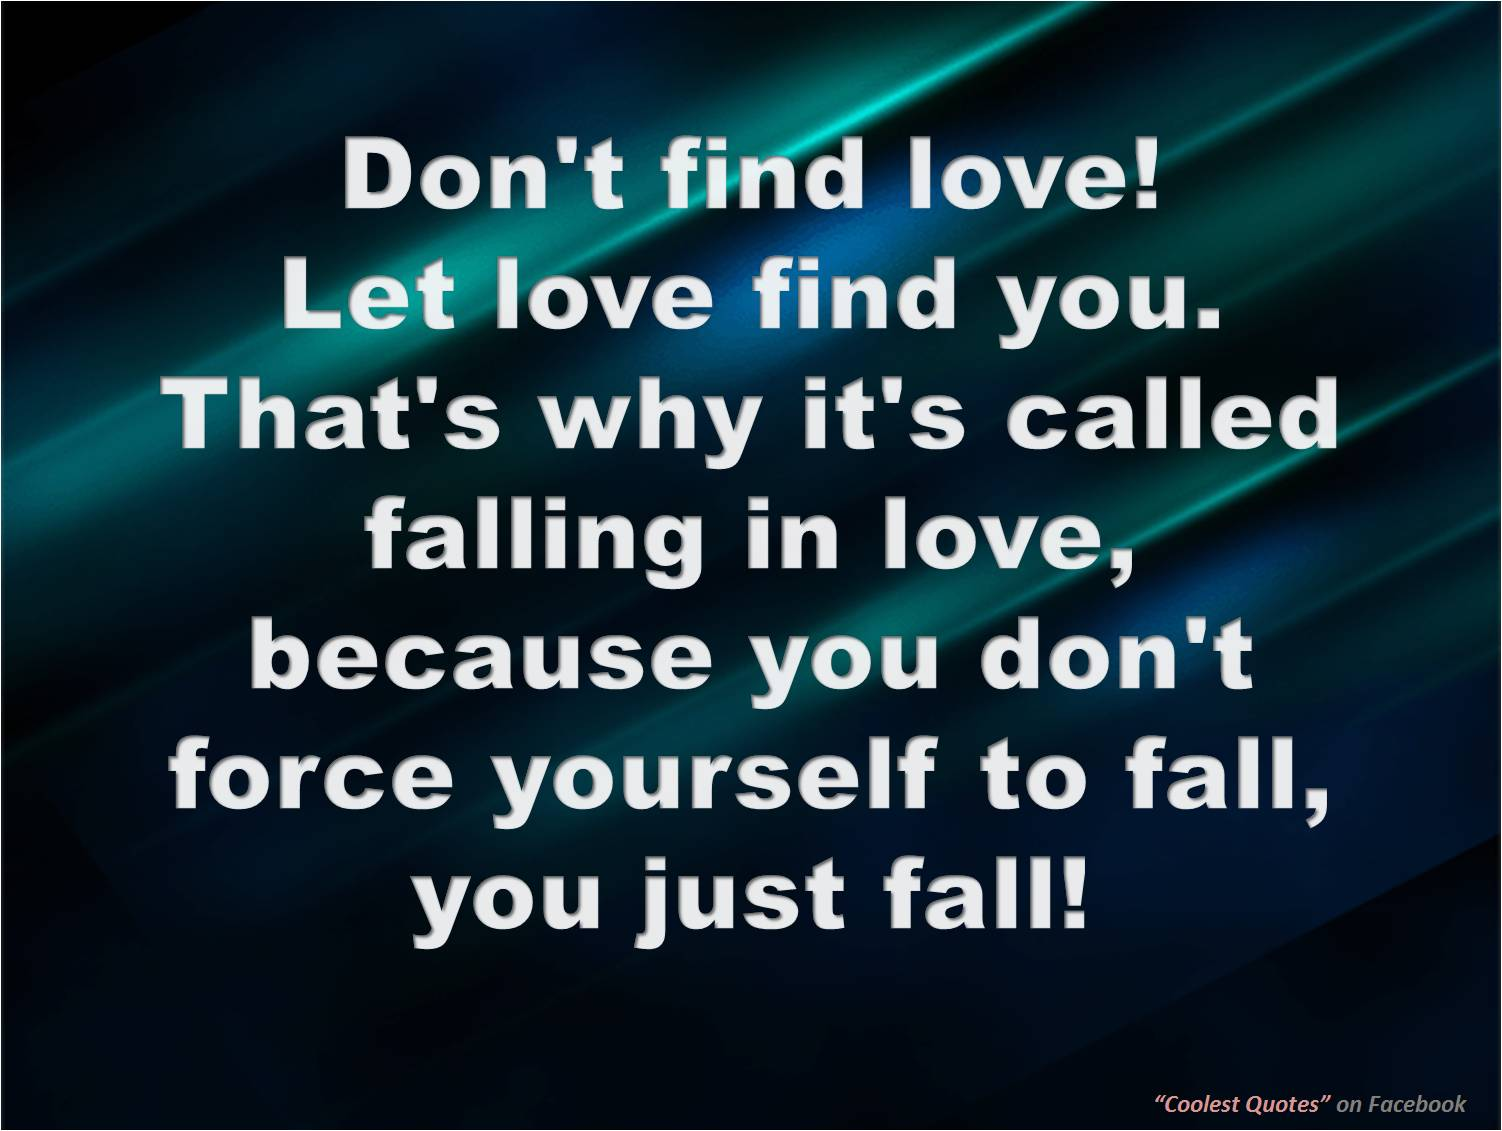 My Coolest Quotes: Follow this Cool Quote instead of Falling in Love!